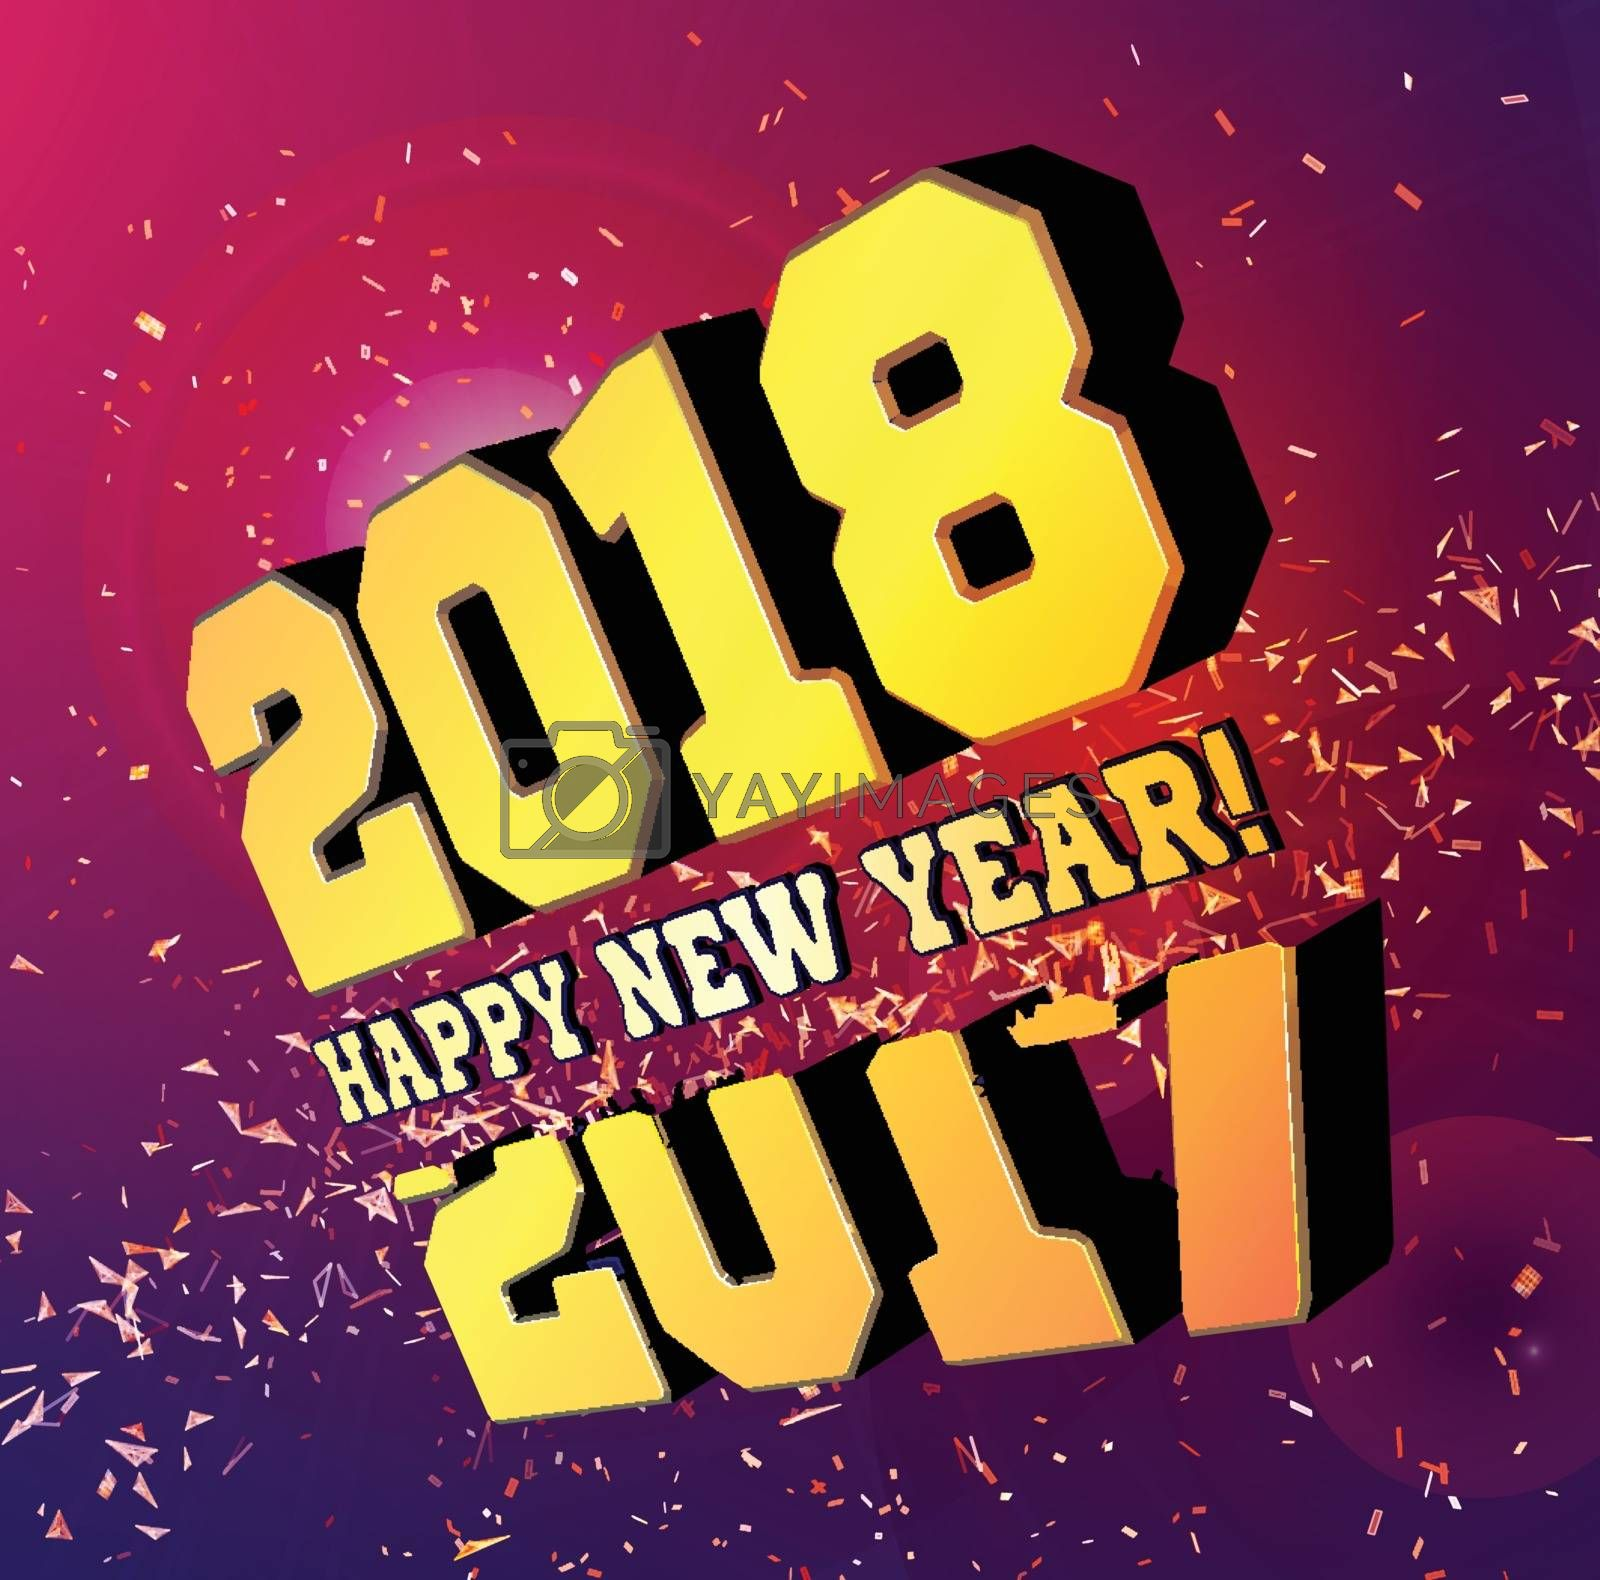 Congratulations on the New Year 2018, which goes after 2017. New Year's numbers with particles flying away from the explosion. Vector illustration